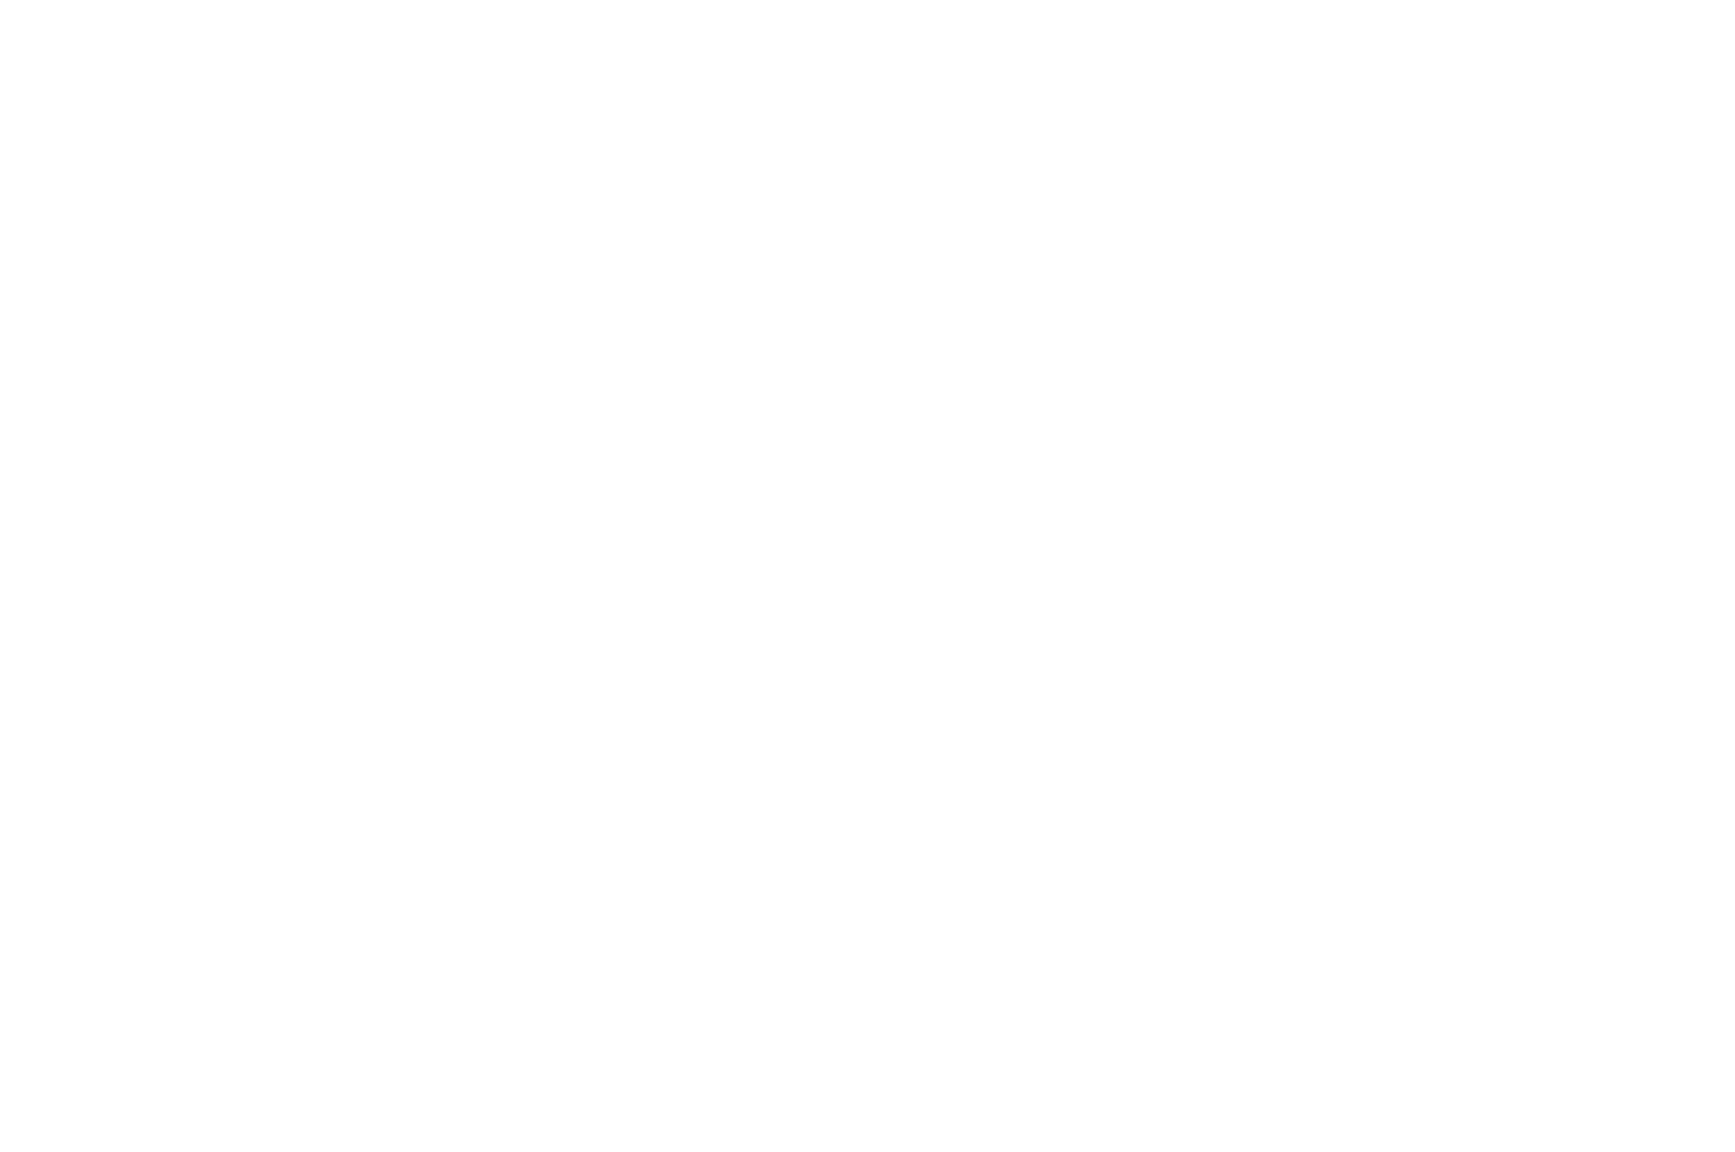 OFFICIAL SELECTION - Asia International Wenzhou Youth Short-Film Exhibition - 2016